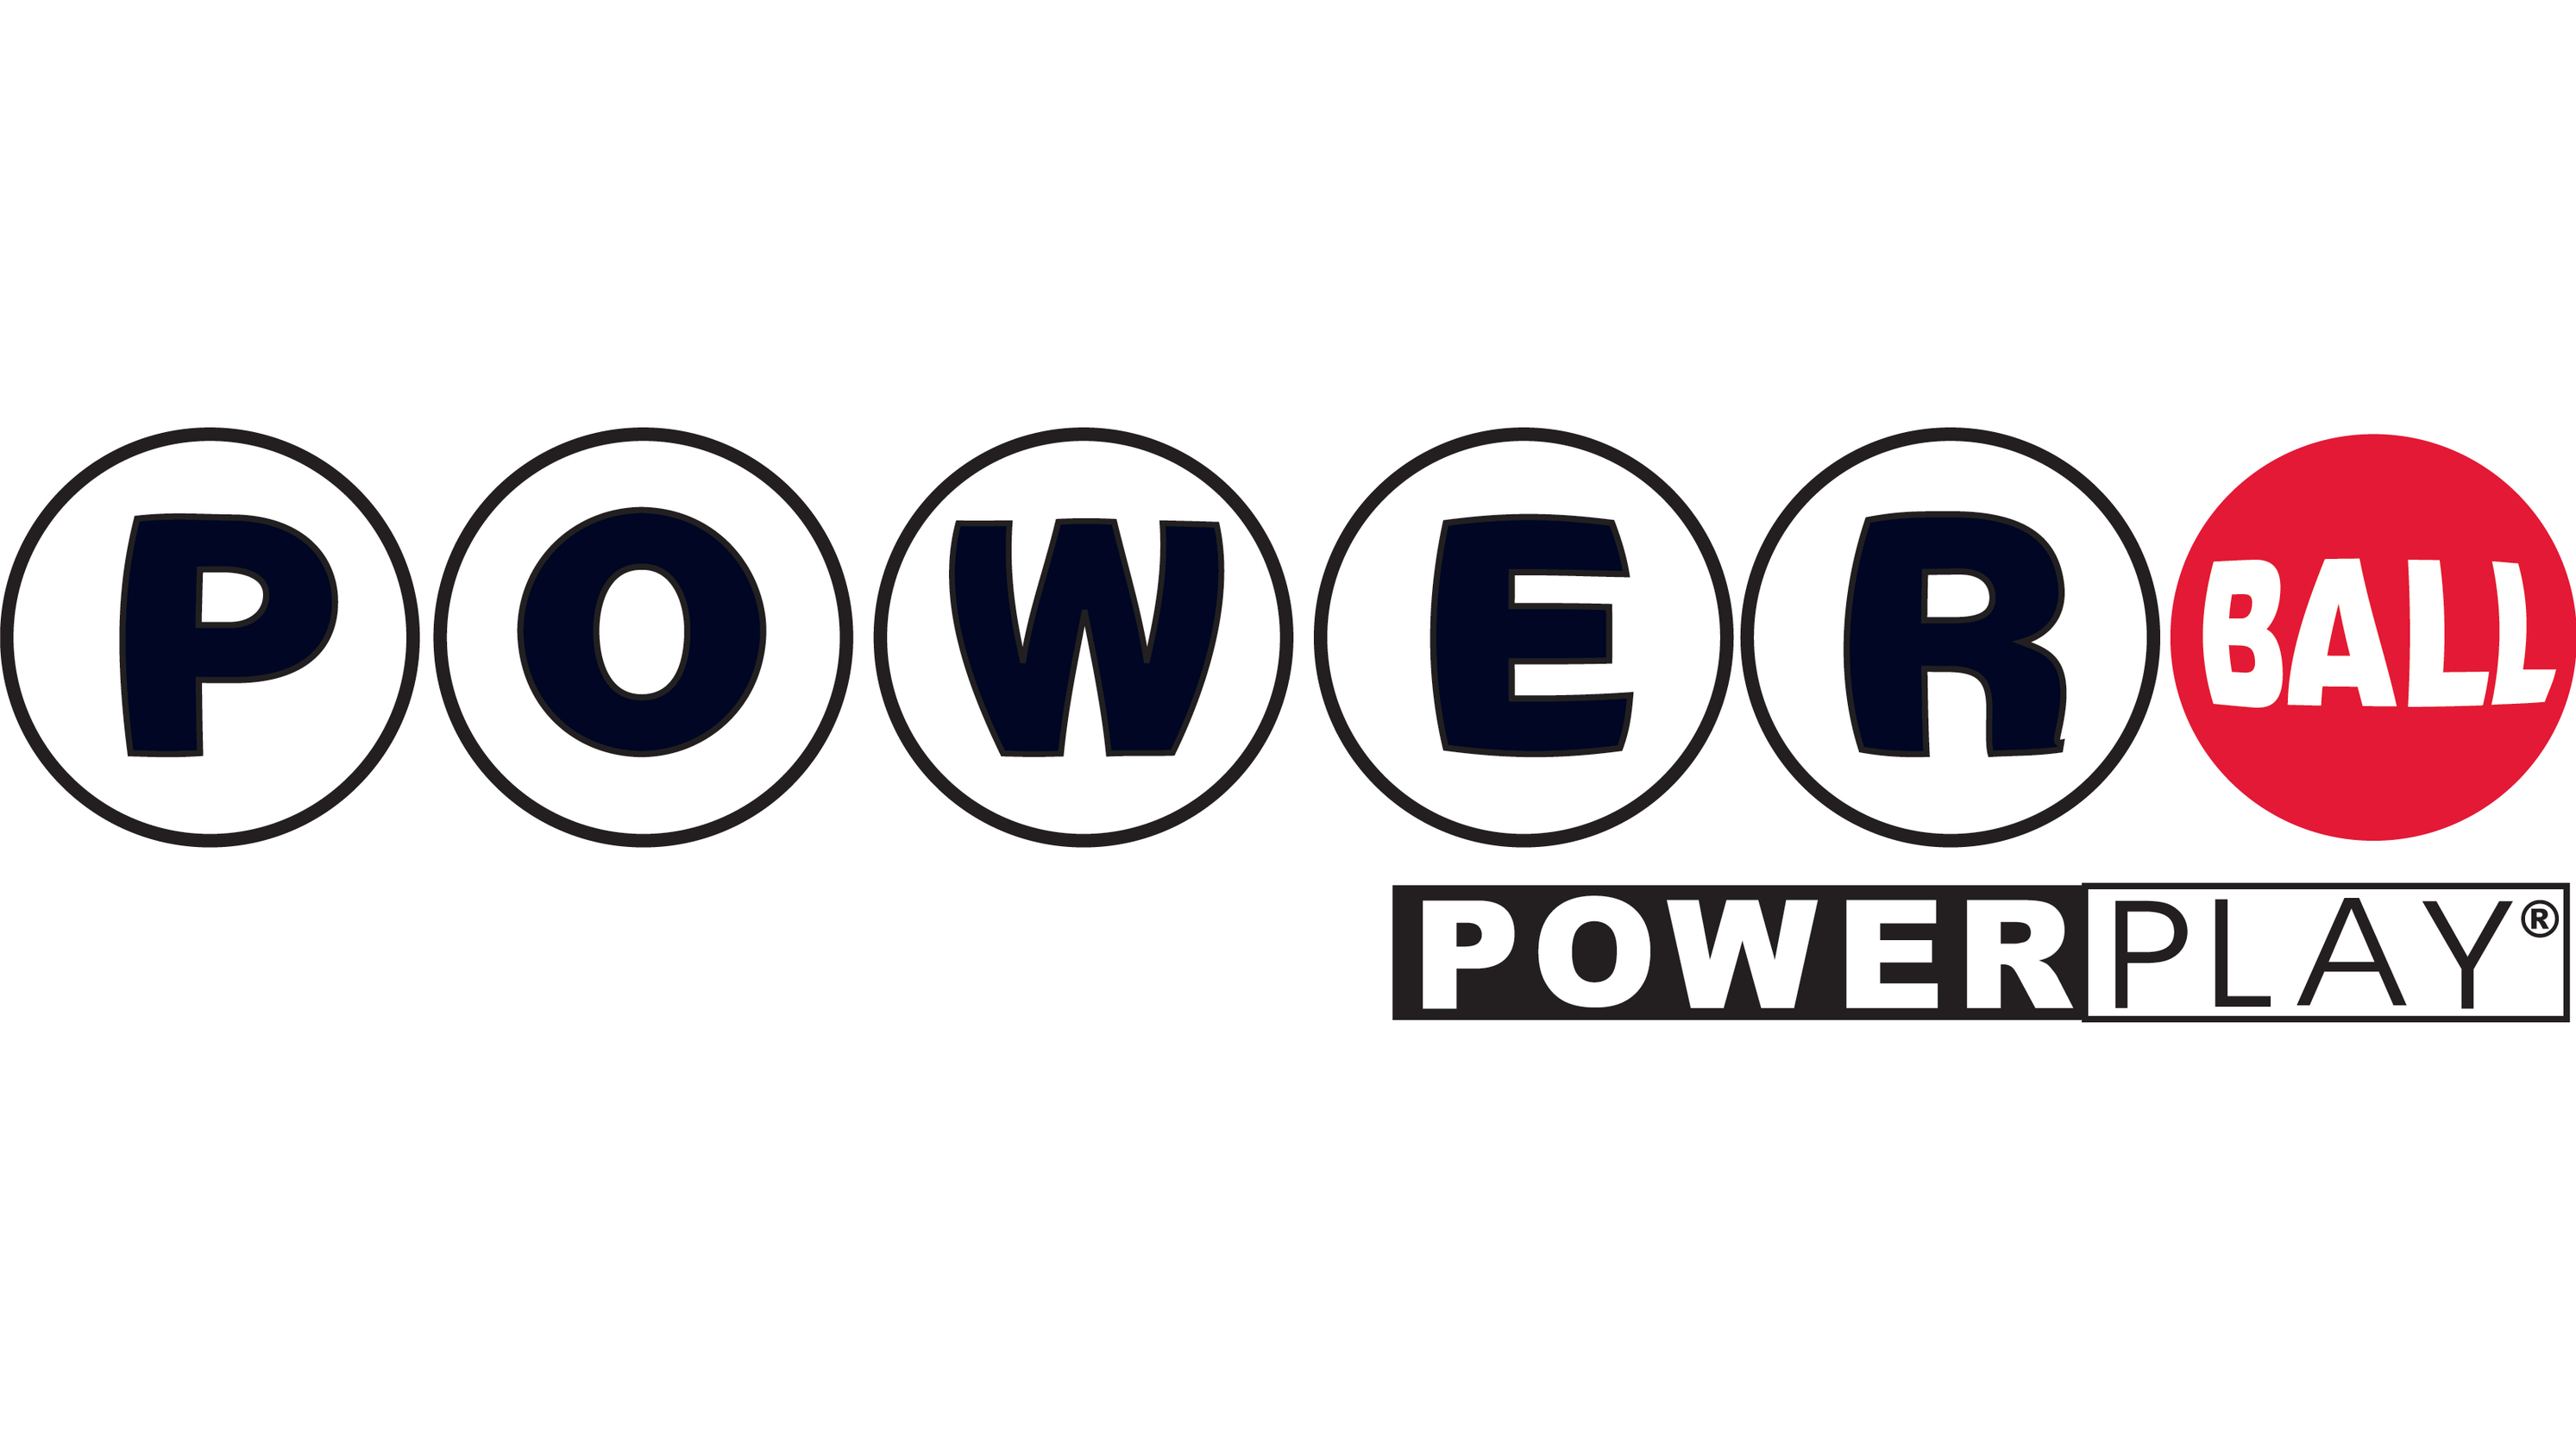 Saturday S Powerball Drawing Worth 750 Million